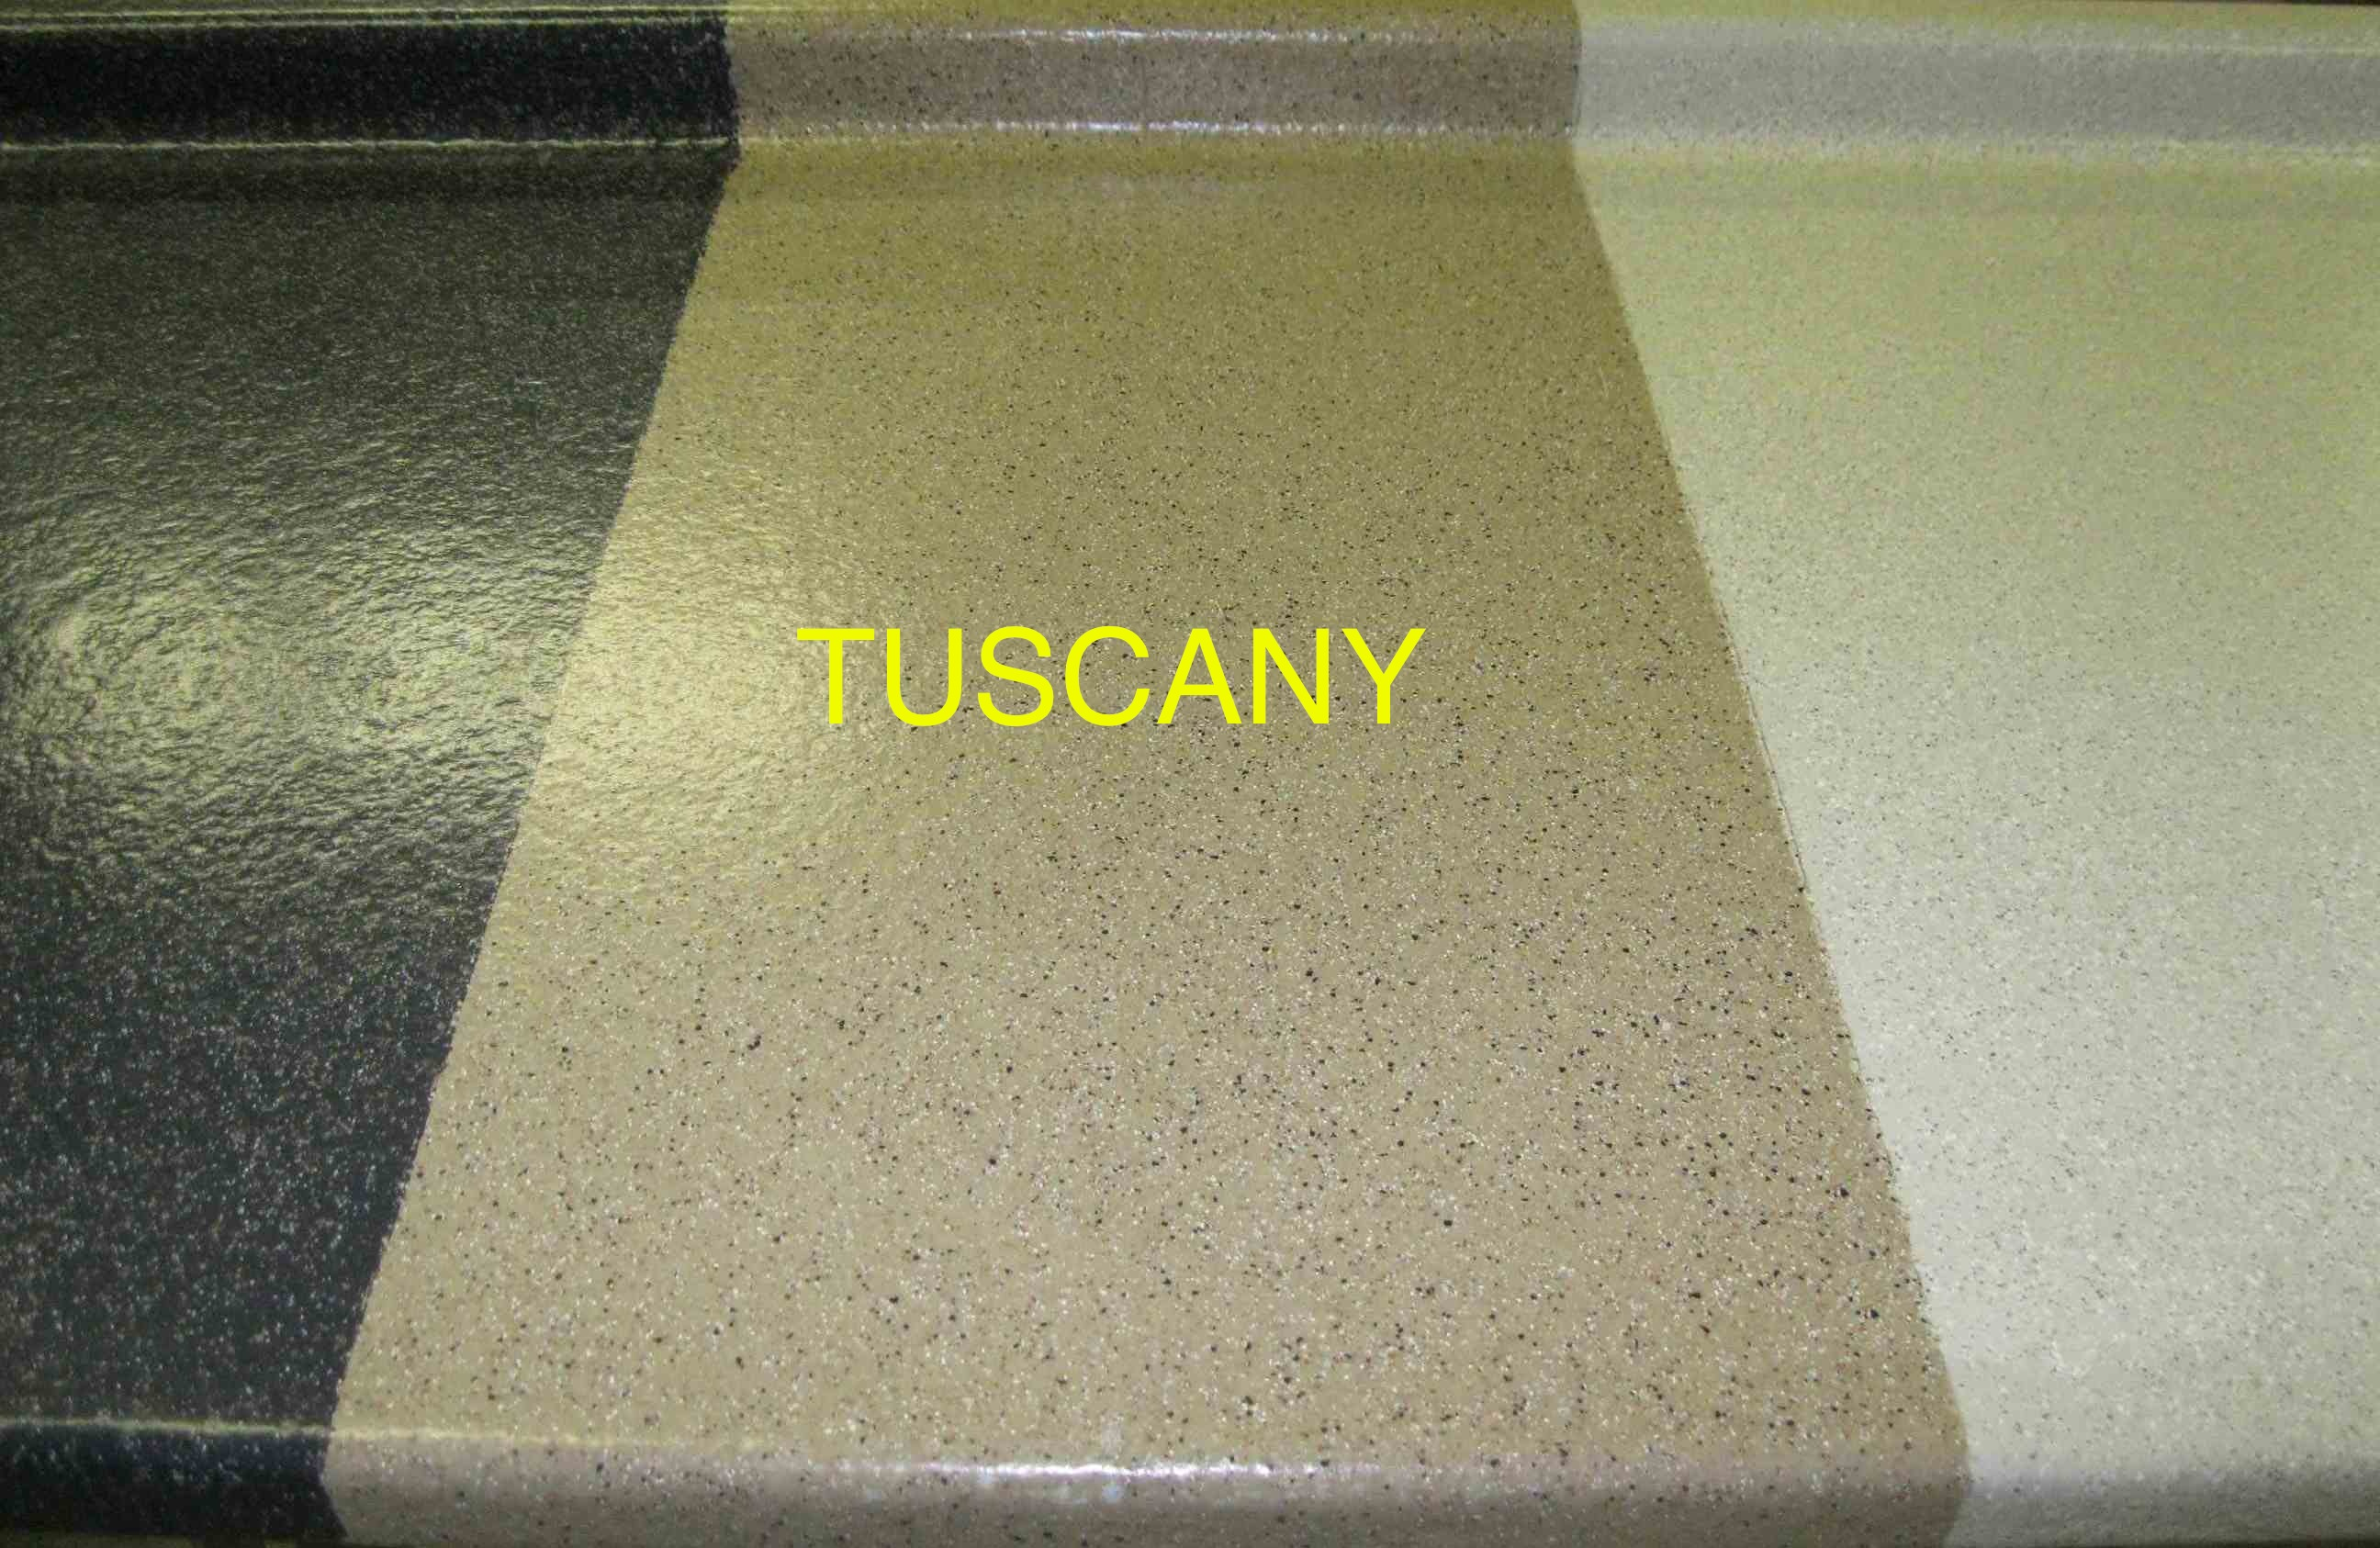 Daich Spreadstone Countertop Daich Coatings Corporation Dcfk Ty Tuscany Countertop